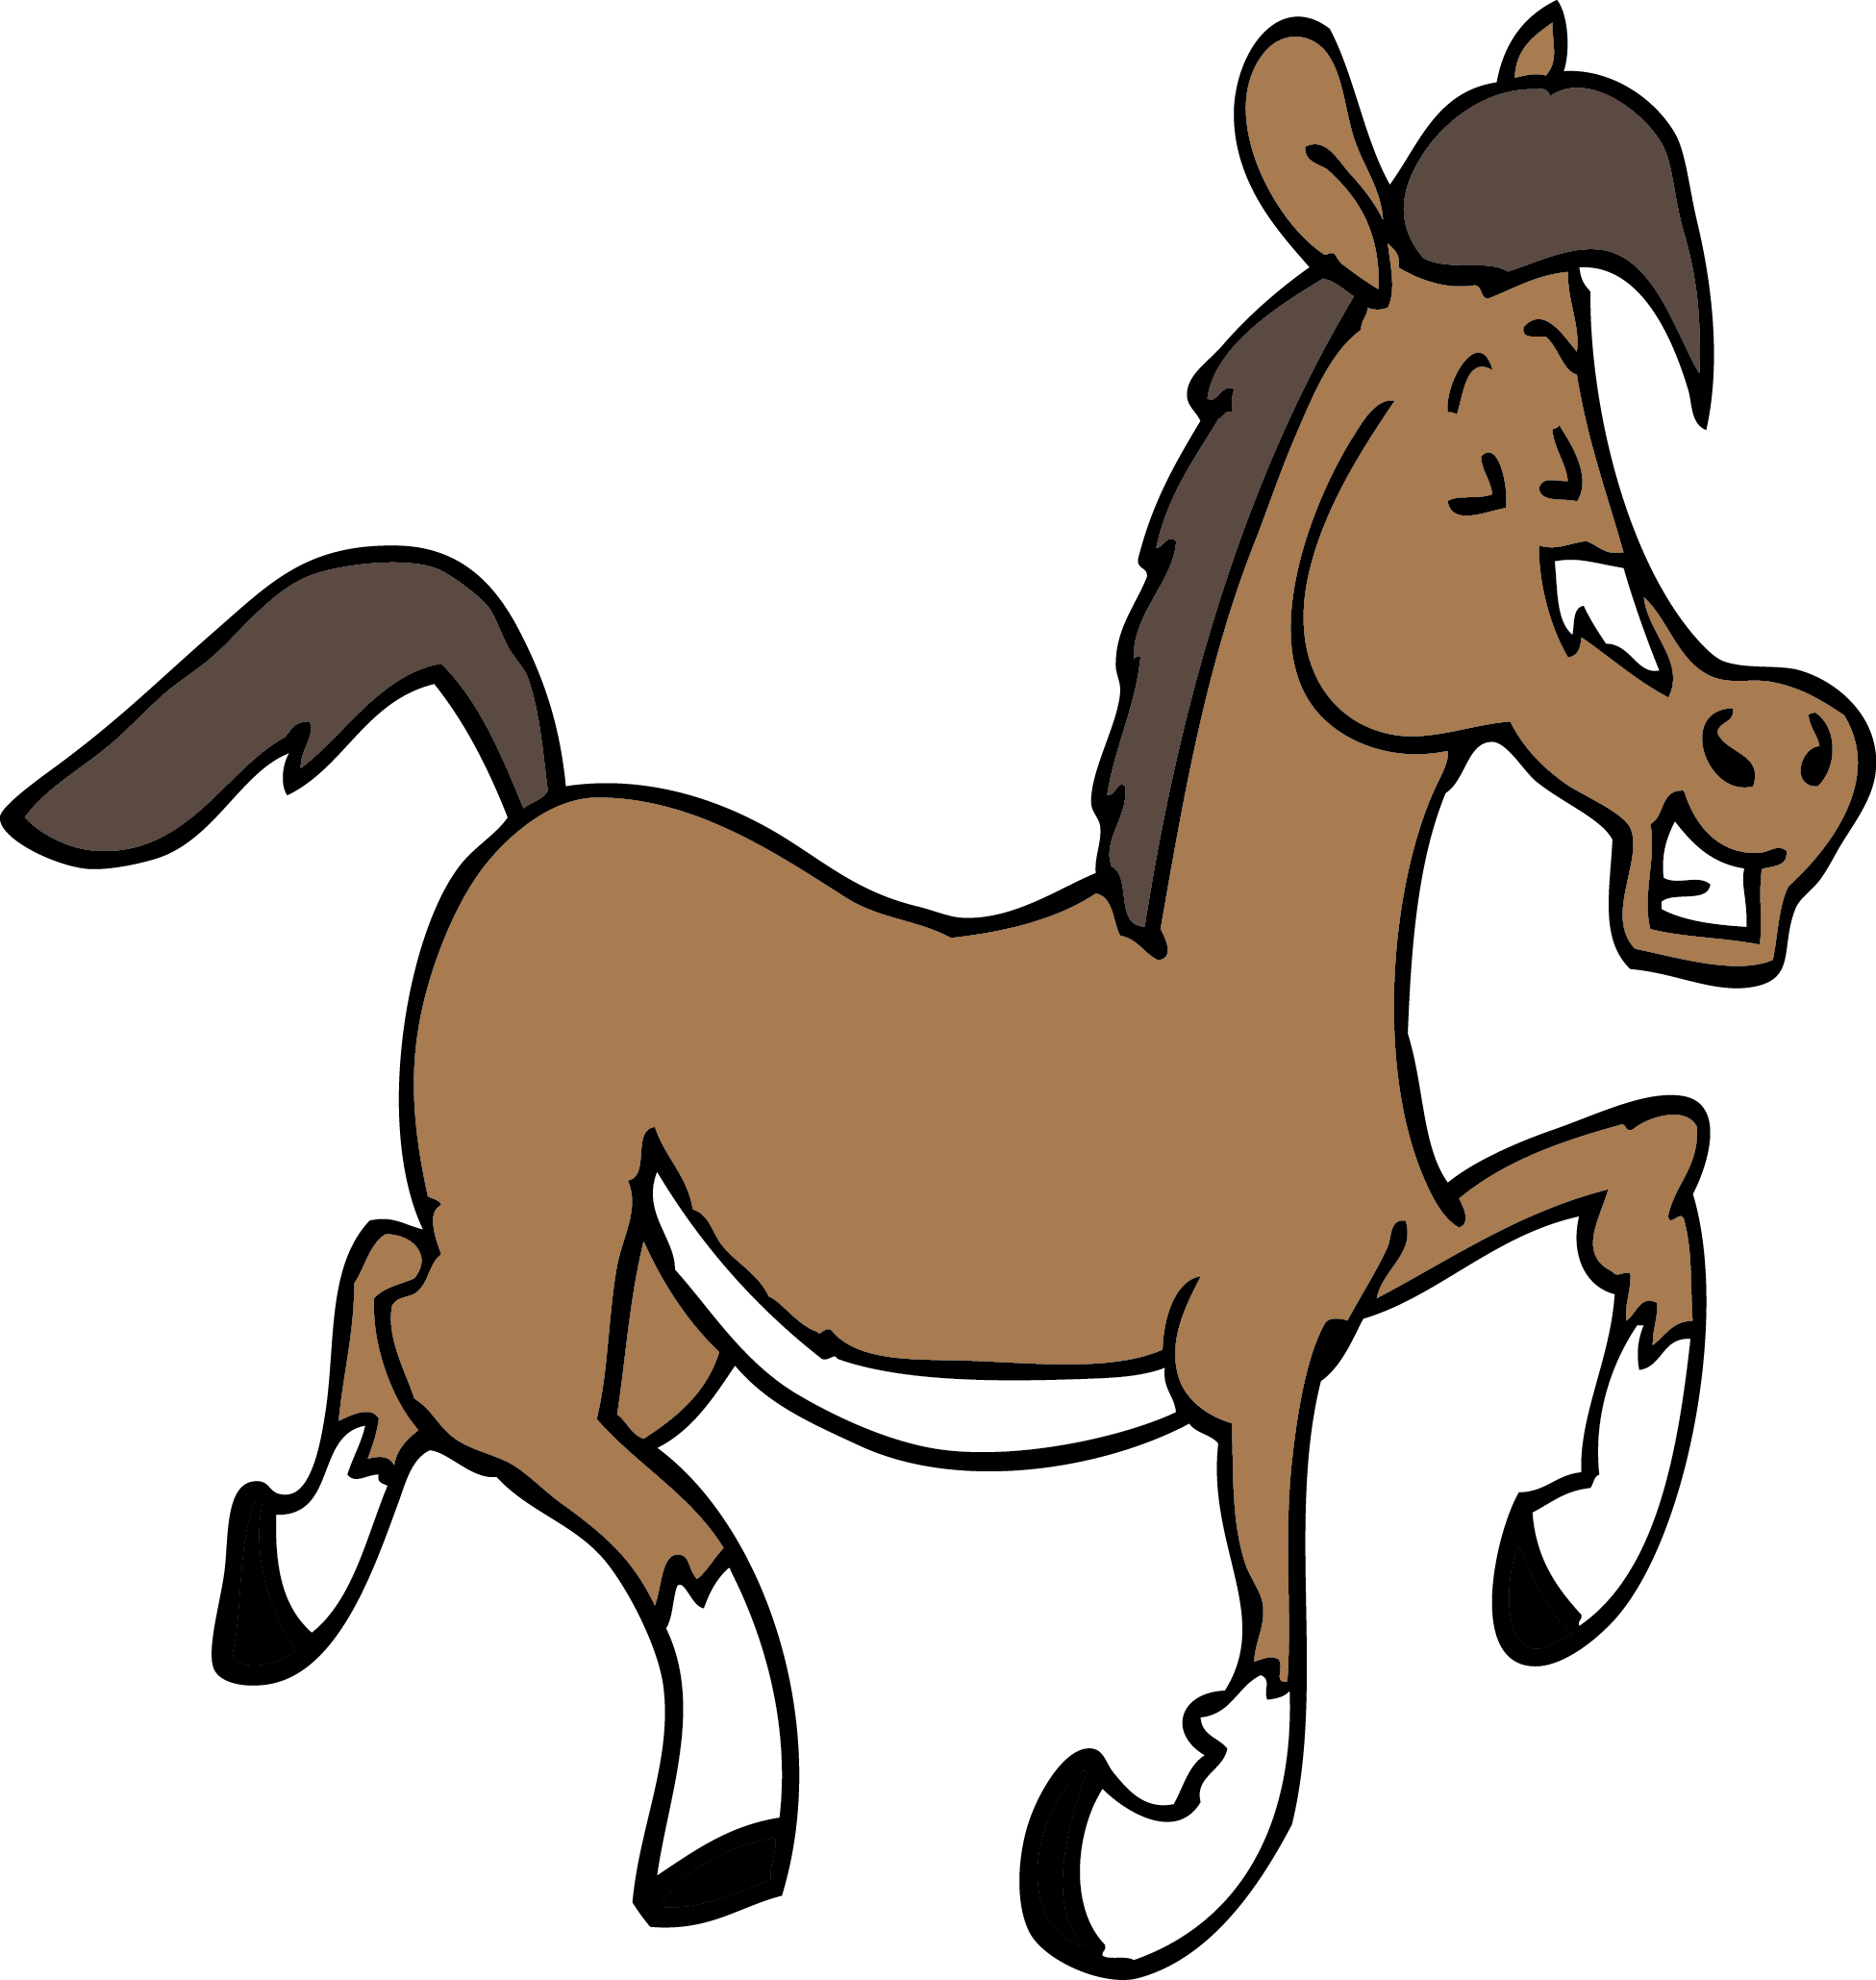 Christmas horse clipart clip art royalty free stock Quarter Horse Clipart at GetDrawings.com | Free for personal use ... clip art royalty free stock